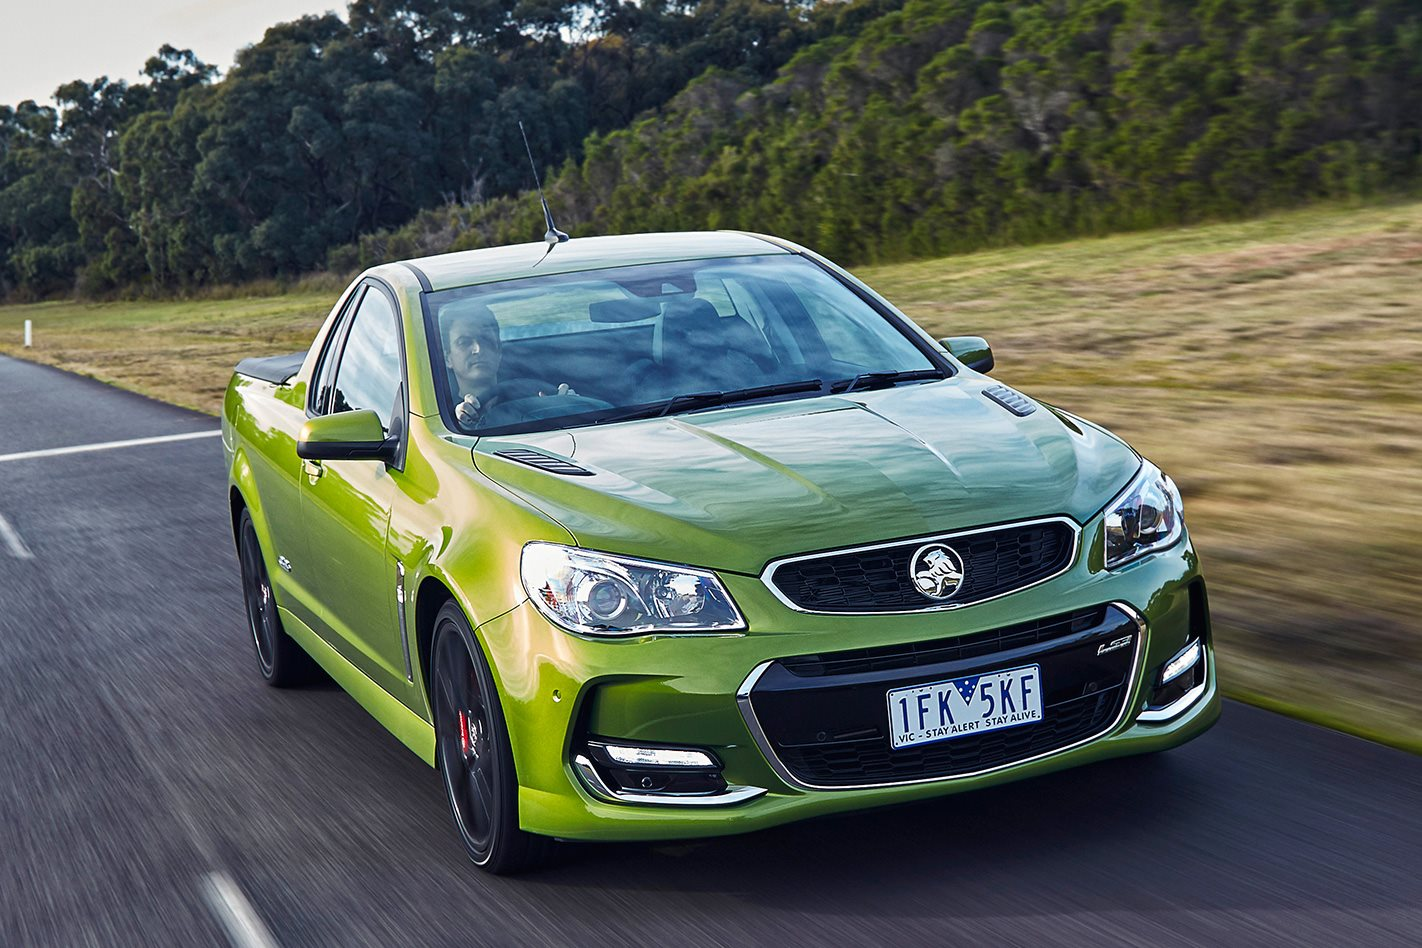 2004 holden vz one tonner image collections hd cars wallpaper 2004 holden vz ute ss images hd cars wallpaper 2004 holden vz commodore sv8 choice image vanachro Gallery